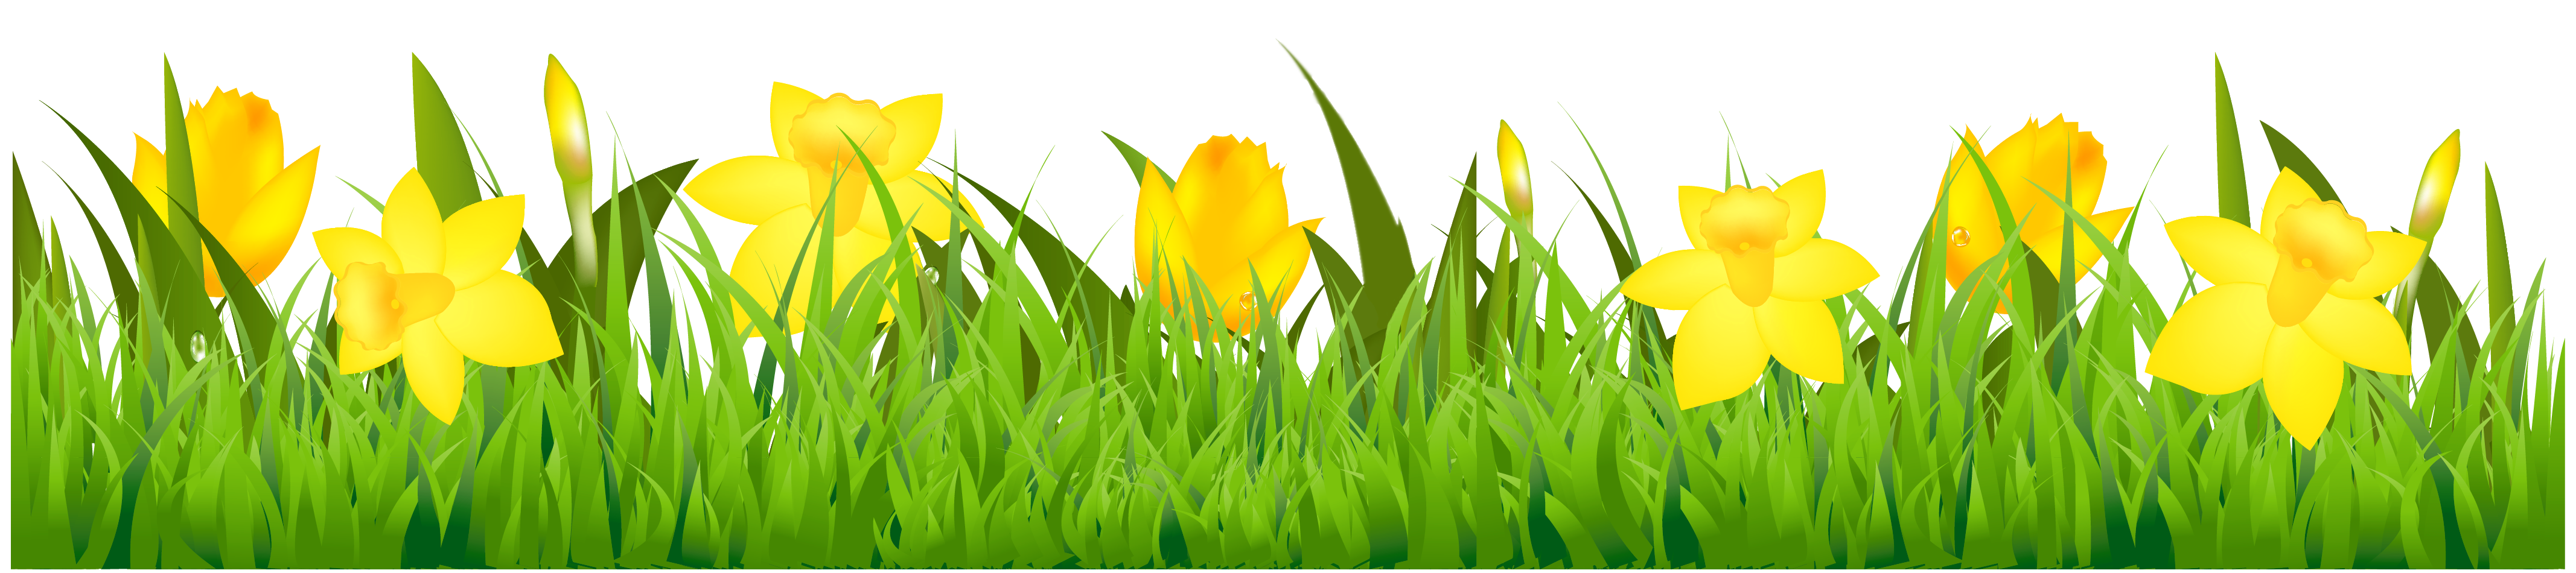 Grass with Daffodils PNG Clipart